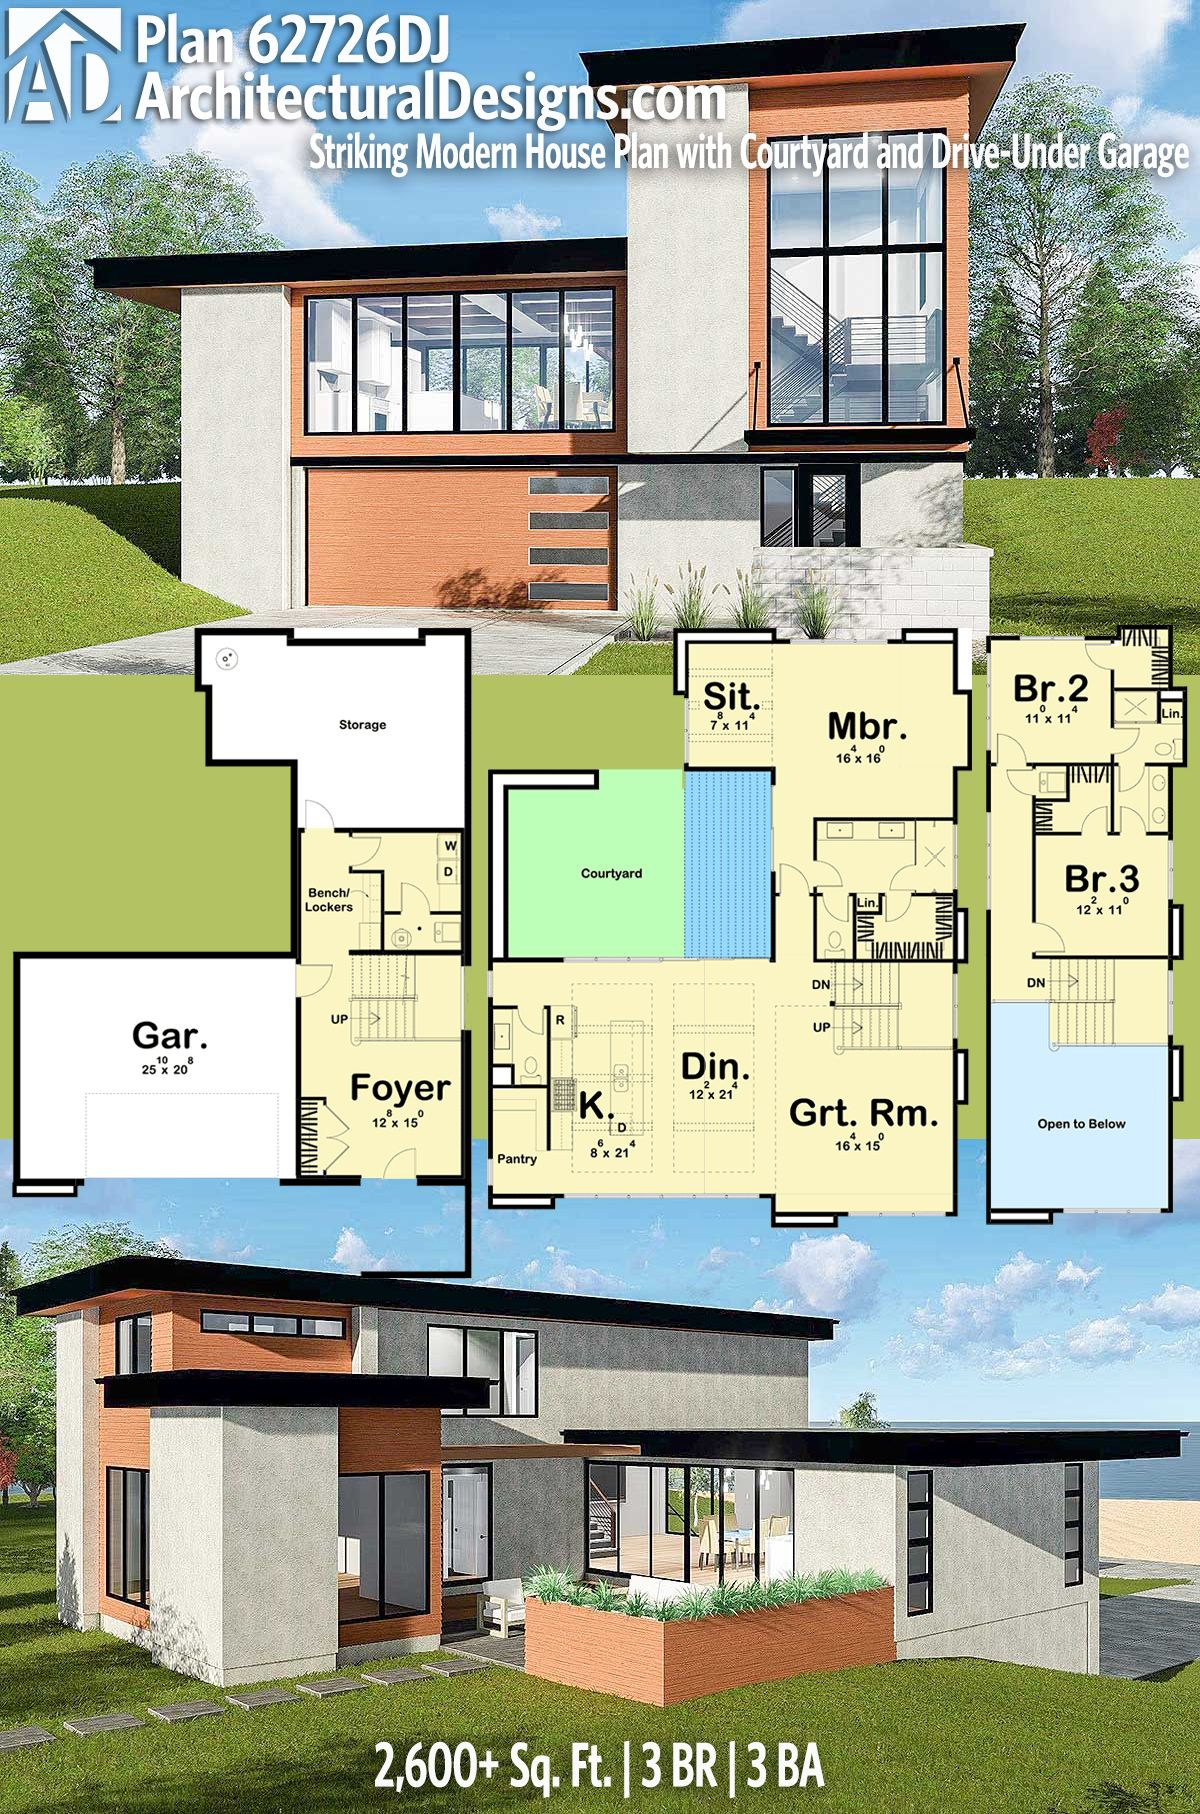 Plan 62726dj Striking Modern House Plan With Courtyard And Drive Under Garage Porch House Plans Courtyard House Plans Modern Farmhouse Plans